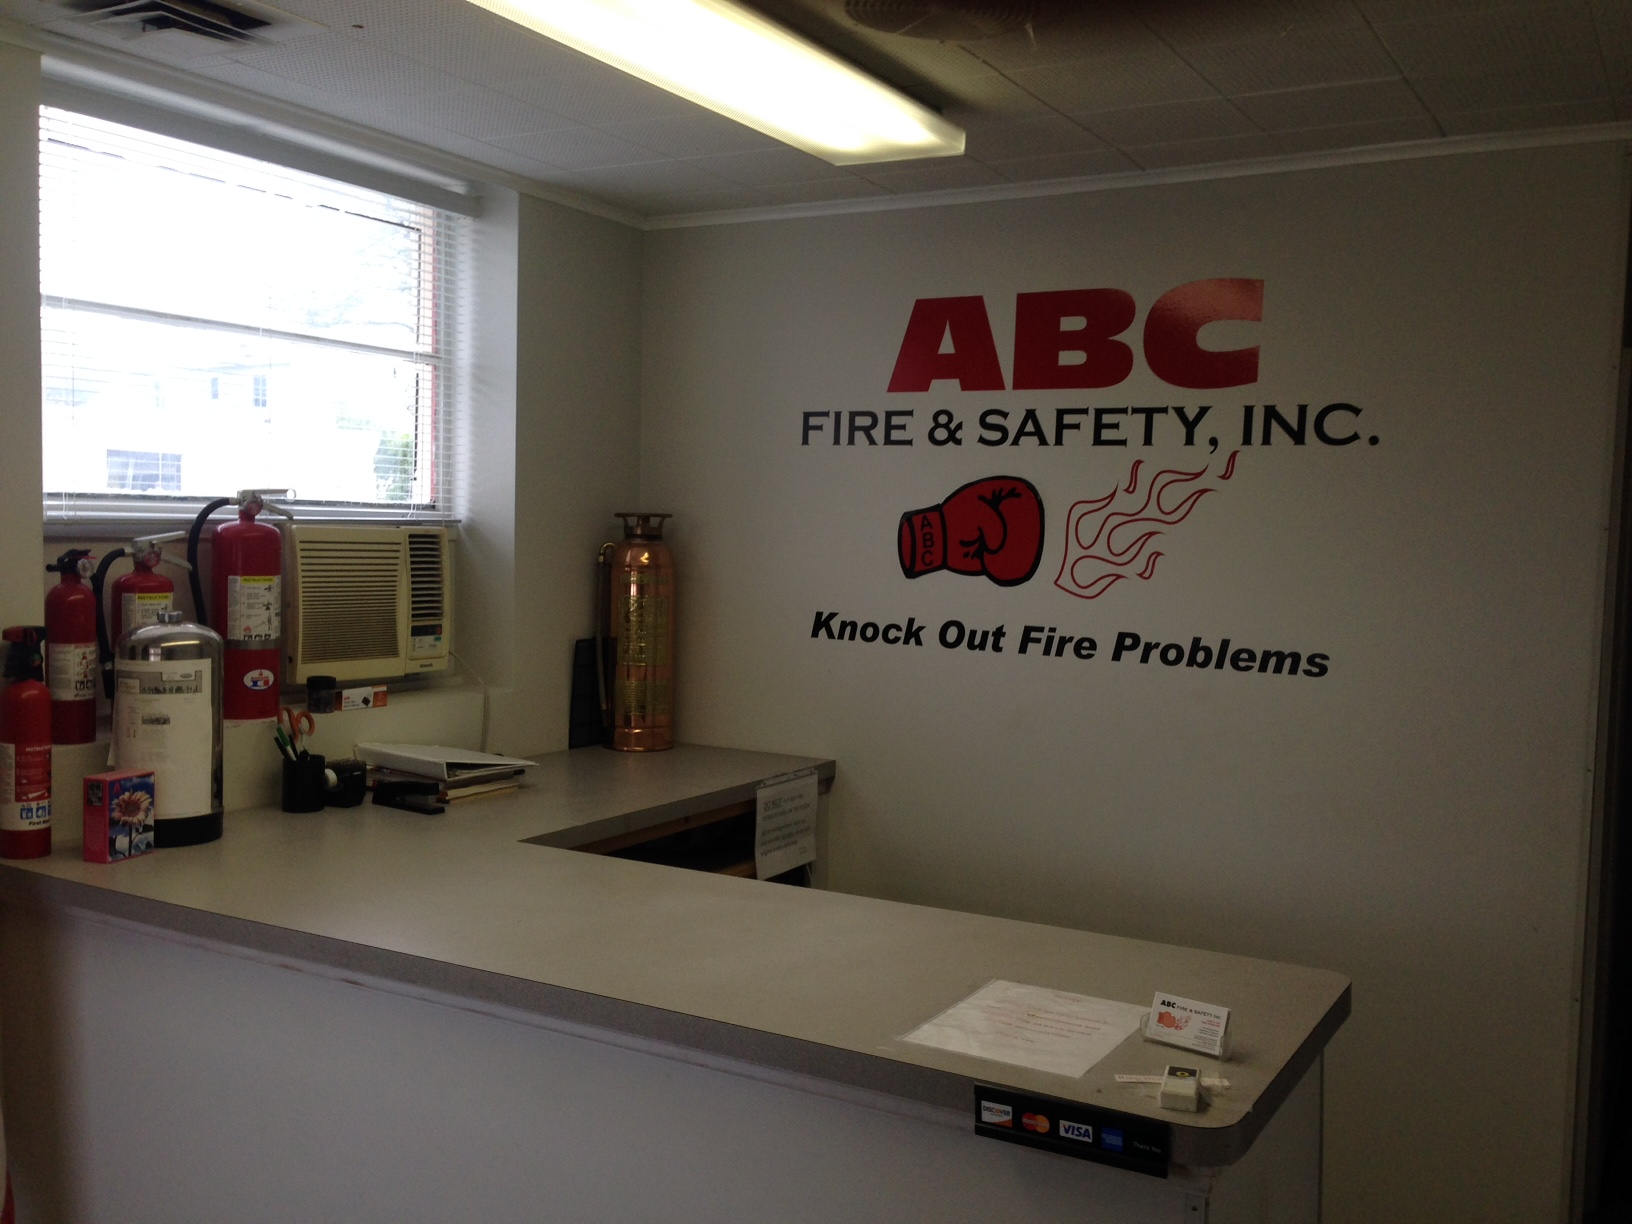 ABC Fire & Safety image 2